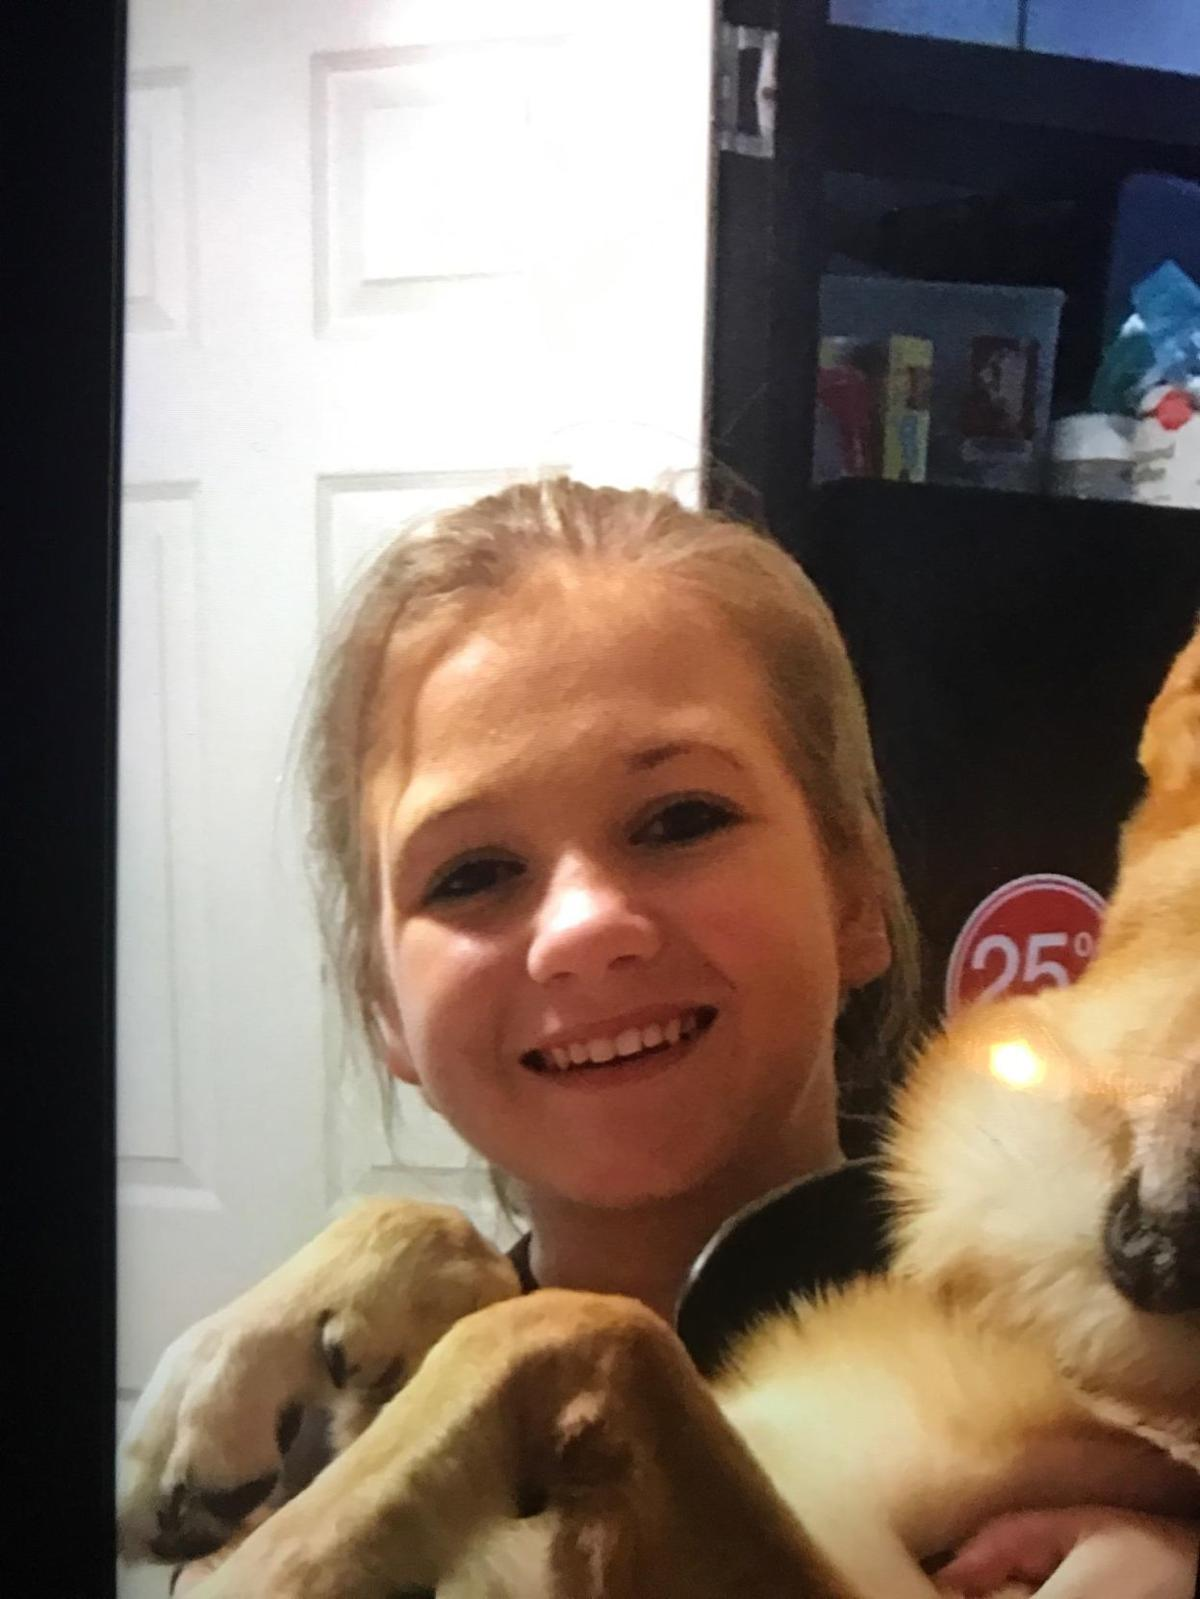 Porter County sheriff's officers searching for missing 13-year-old